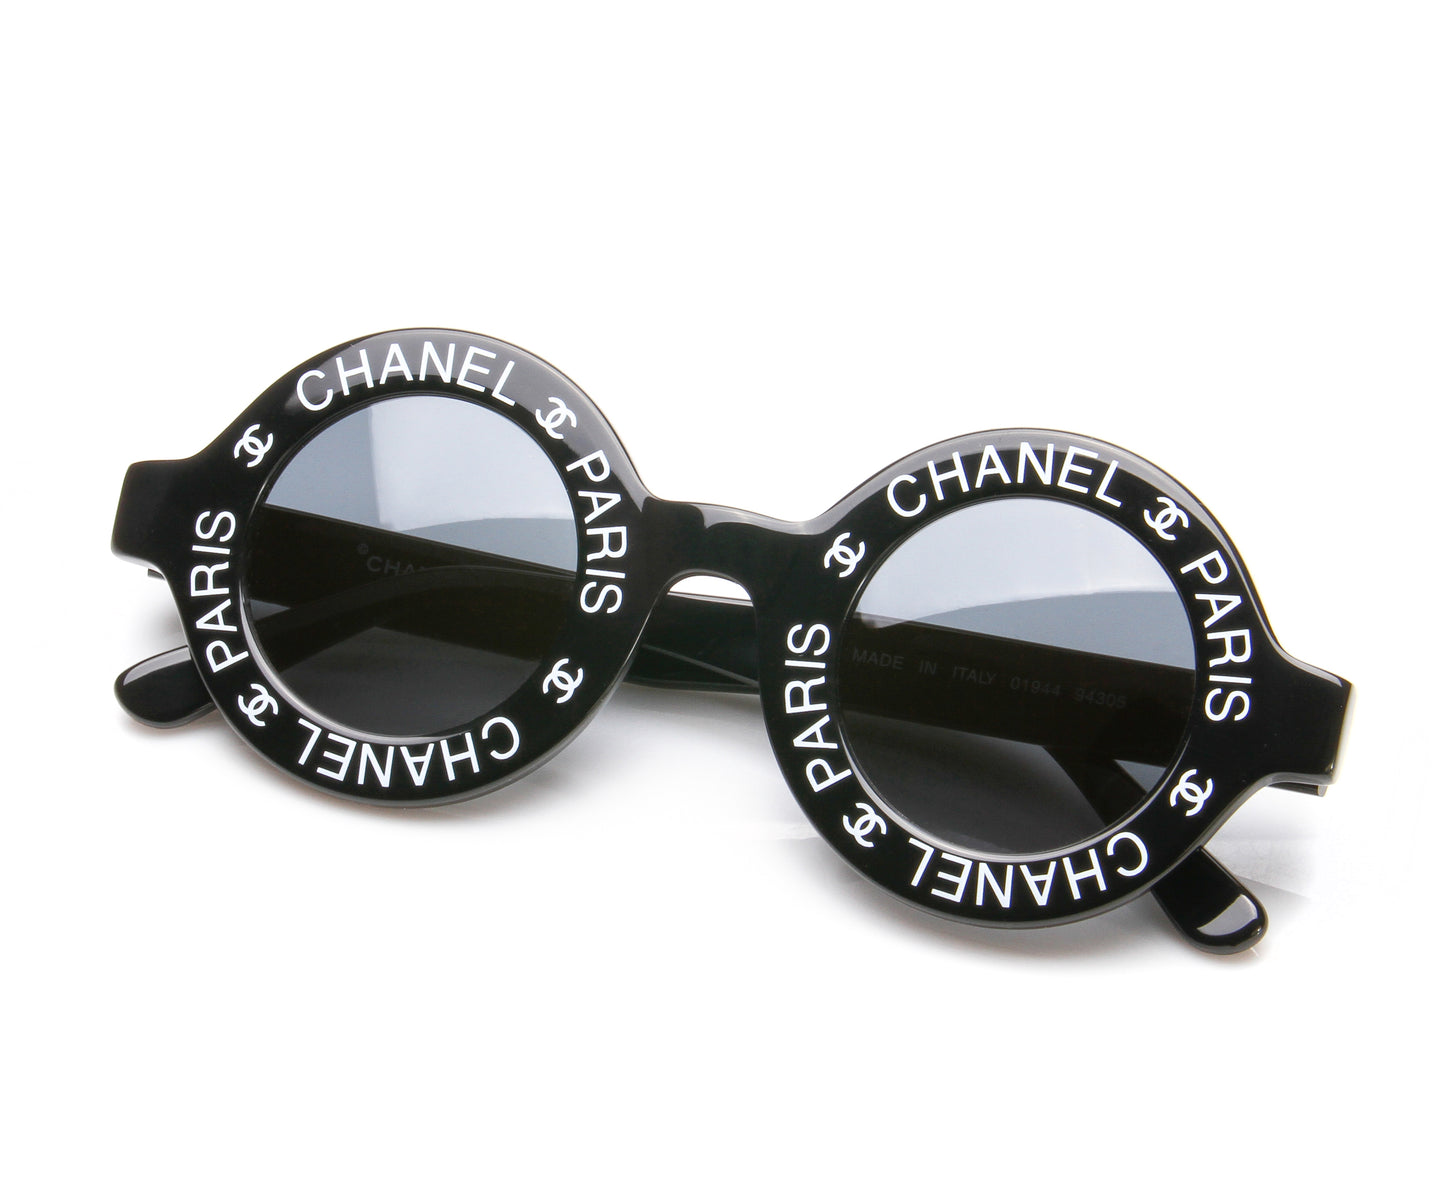 Chanel 01944 94305, Chanel , glasses frames, eyeglasses online, eyeglass frames, mens glasses, womens glasses, buy glasses online, designer eyeglasses, vintage sunglasses, retro sunglasses, vintage glasses, sunglass, eyeglass, glasses, lens, vintage frames company, vf